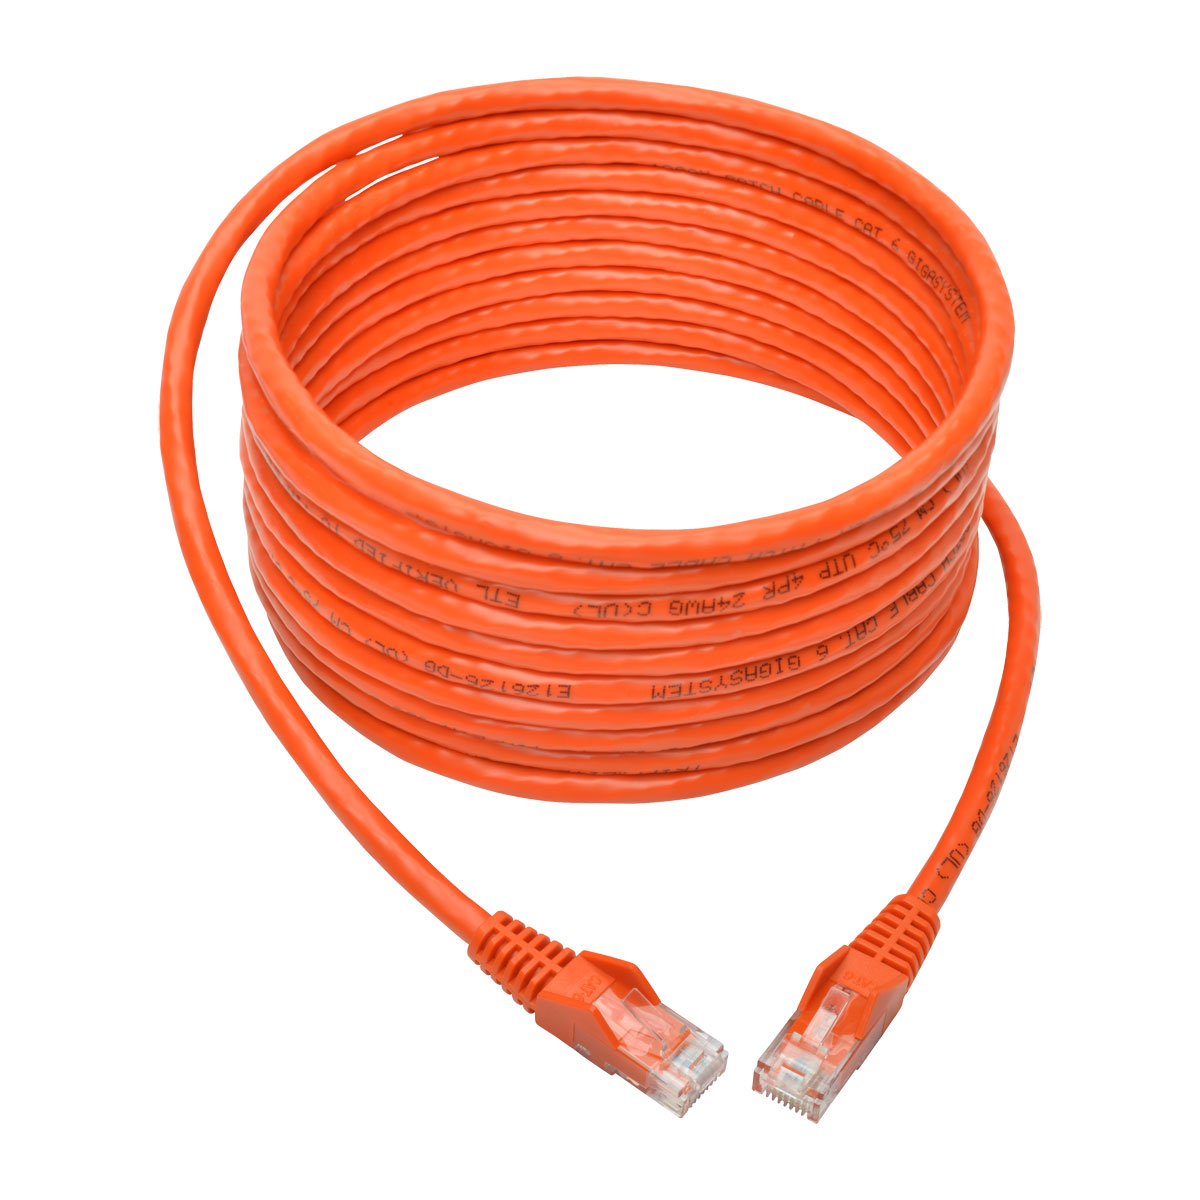 Tripp Lite 15ft Cat6 Snagless Molded Patch Cable Utp Orange Rj45 M Pairs 24awg Cat5e Cordnetwork Wiring Diagramnetwork 15 N201 015 Or Networking Cables